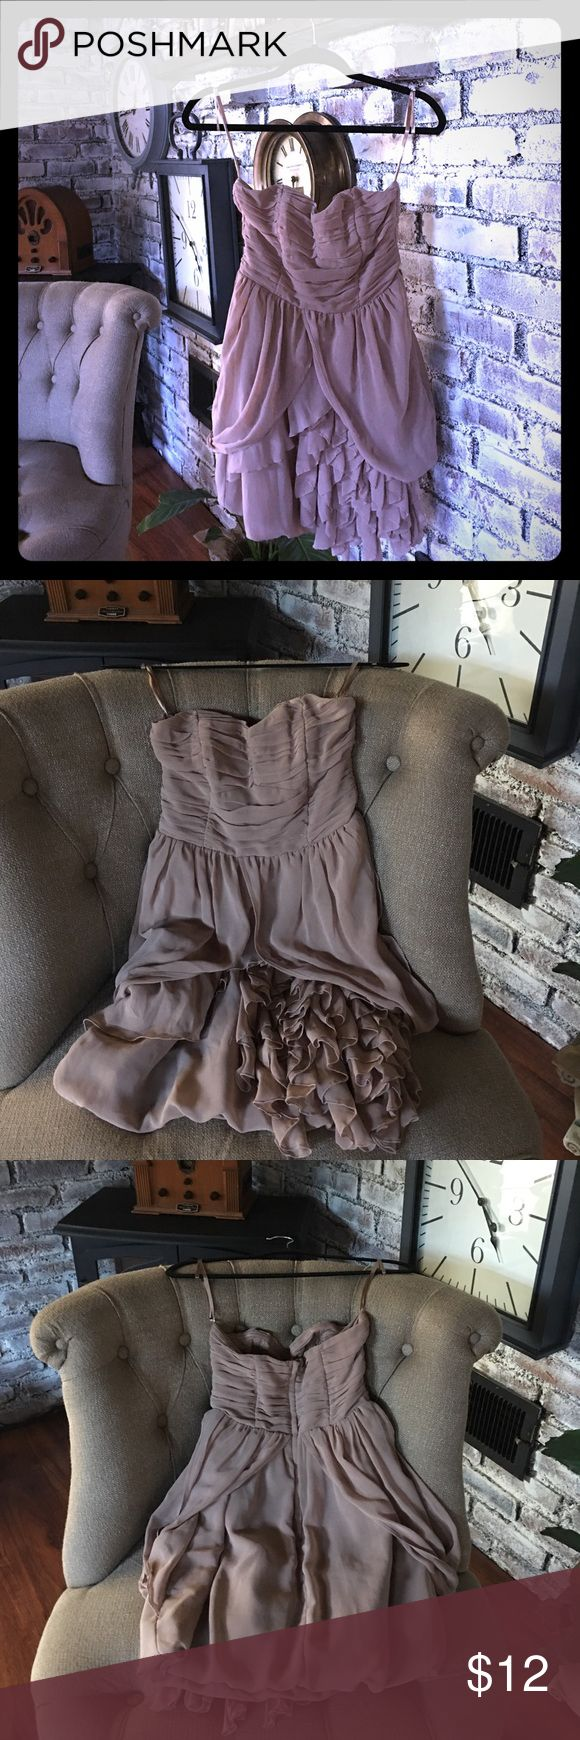 H&M dark beige mini dress size small Get ready for the spring season!!! The weddings and upcoming graduations. This dress is perfect for those occasions :) Get it here for the fraction of the cost. Strapless with built in liner. Size small and excellent condition. H&M Dresses Mini